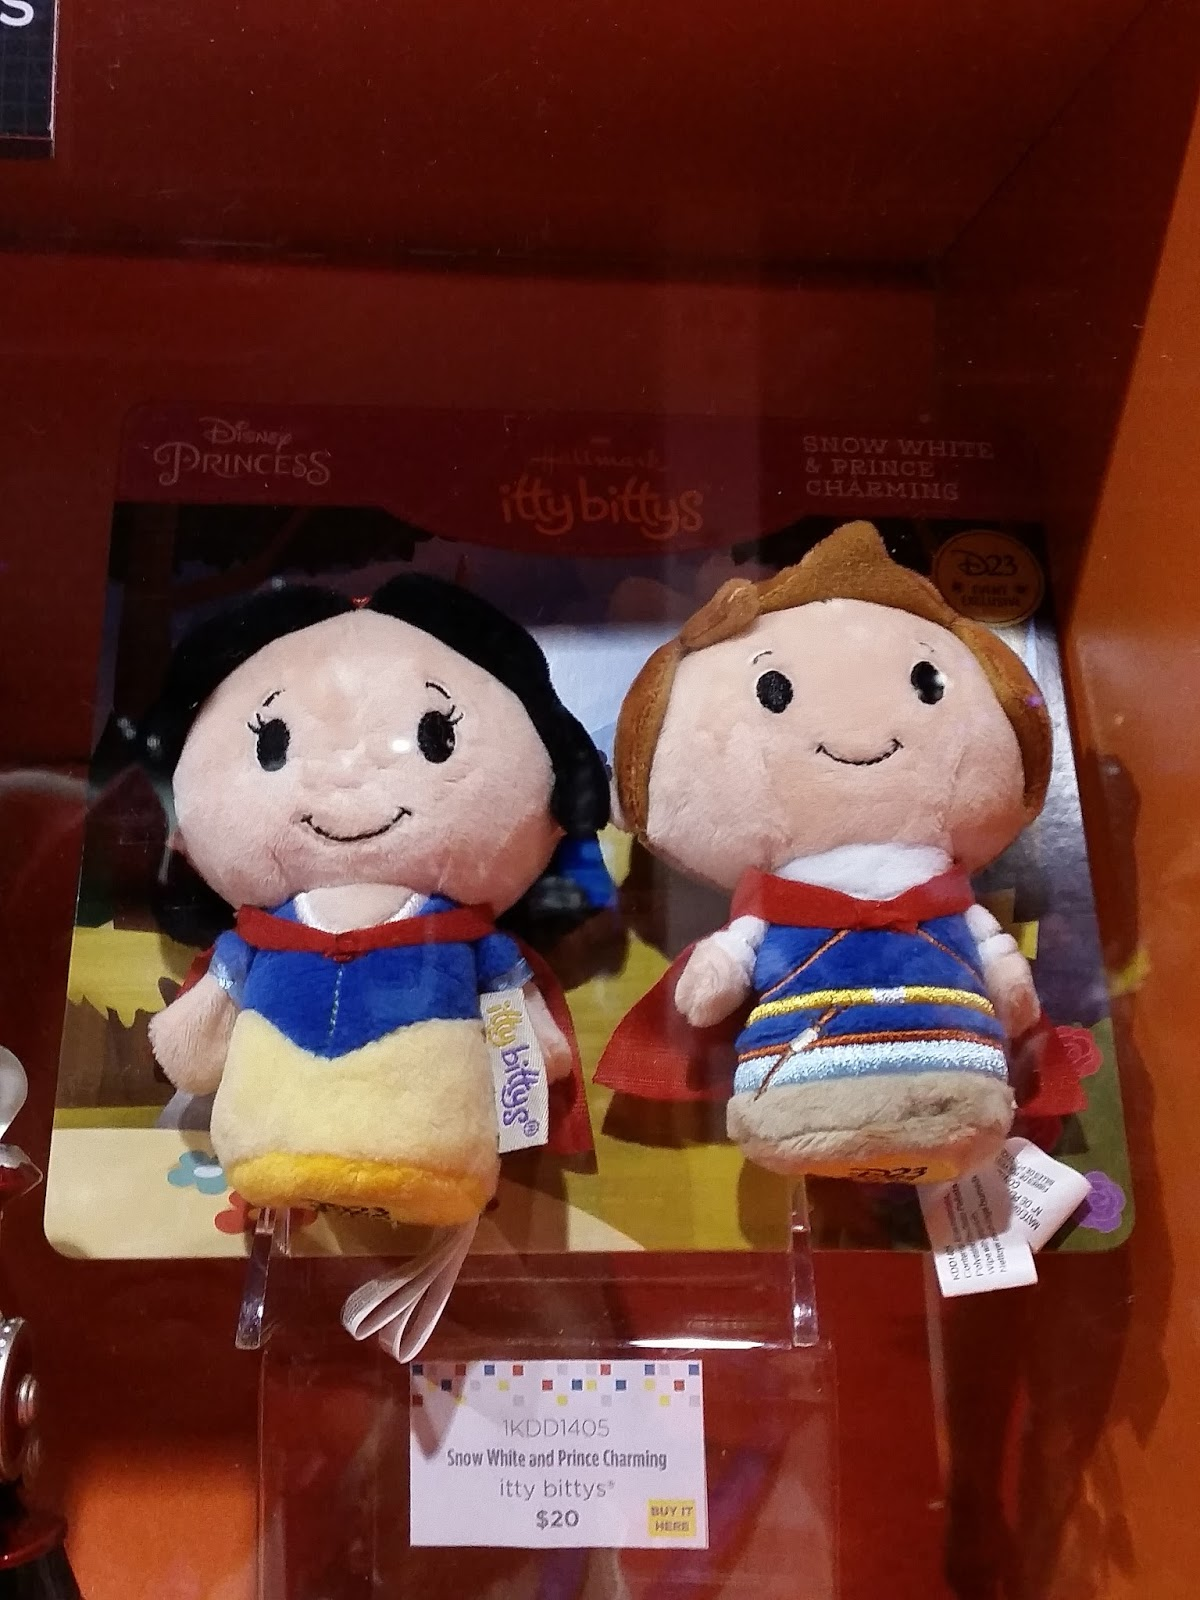 D23 Expo Gold Member Exclusive Hallmark Itty Bittys Snow White /& Prince Charming